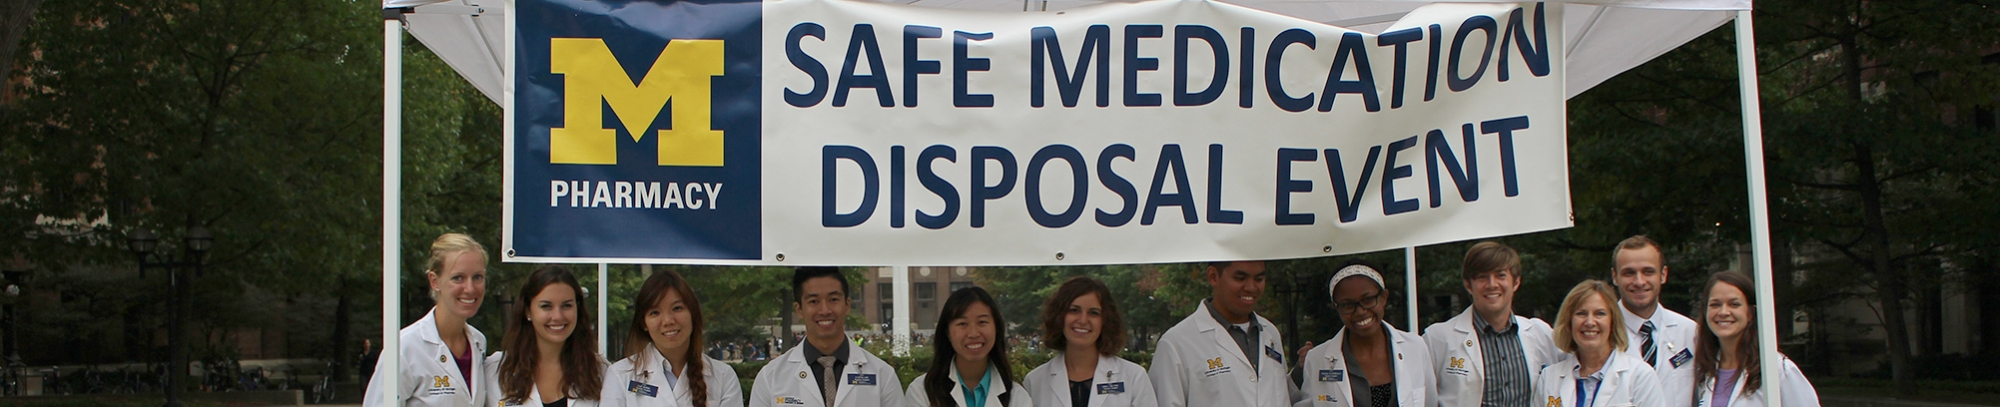 Safe Medication Disposal Event